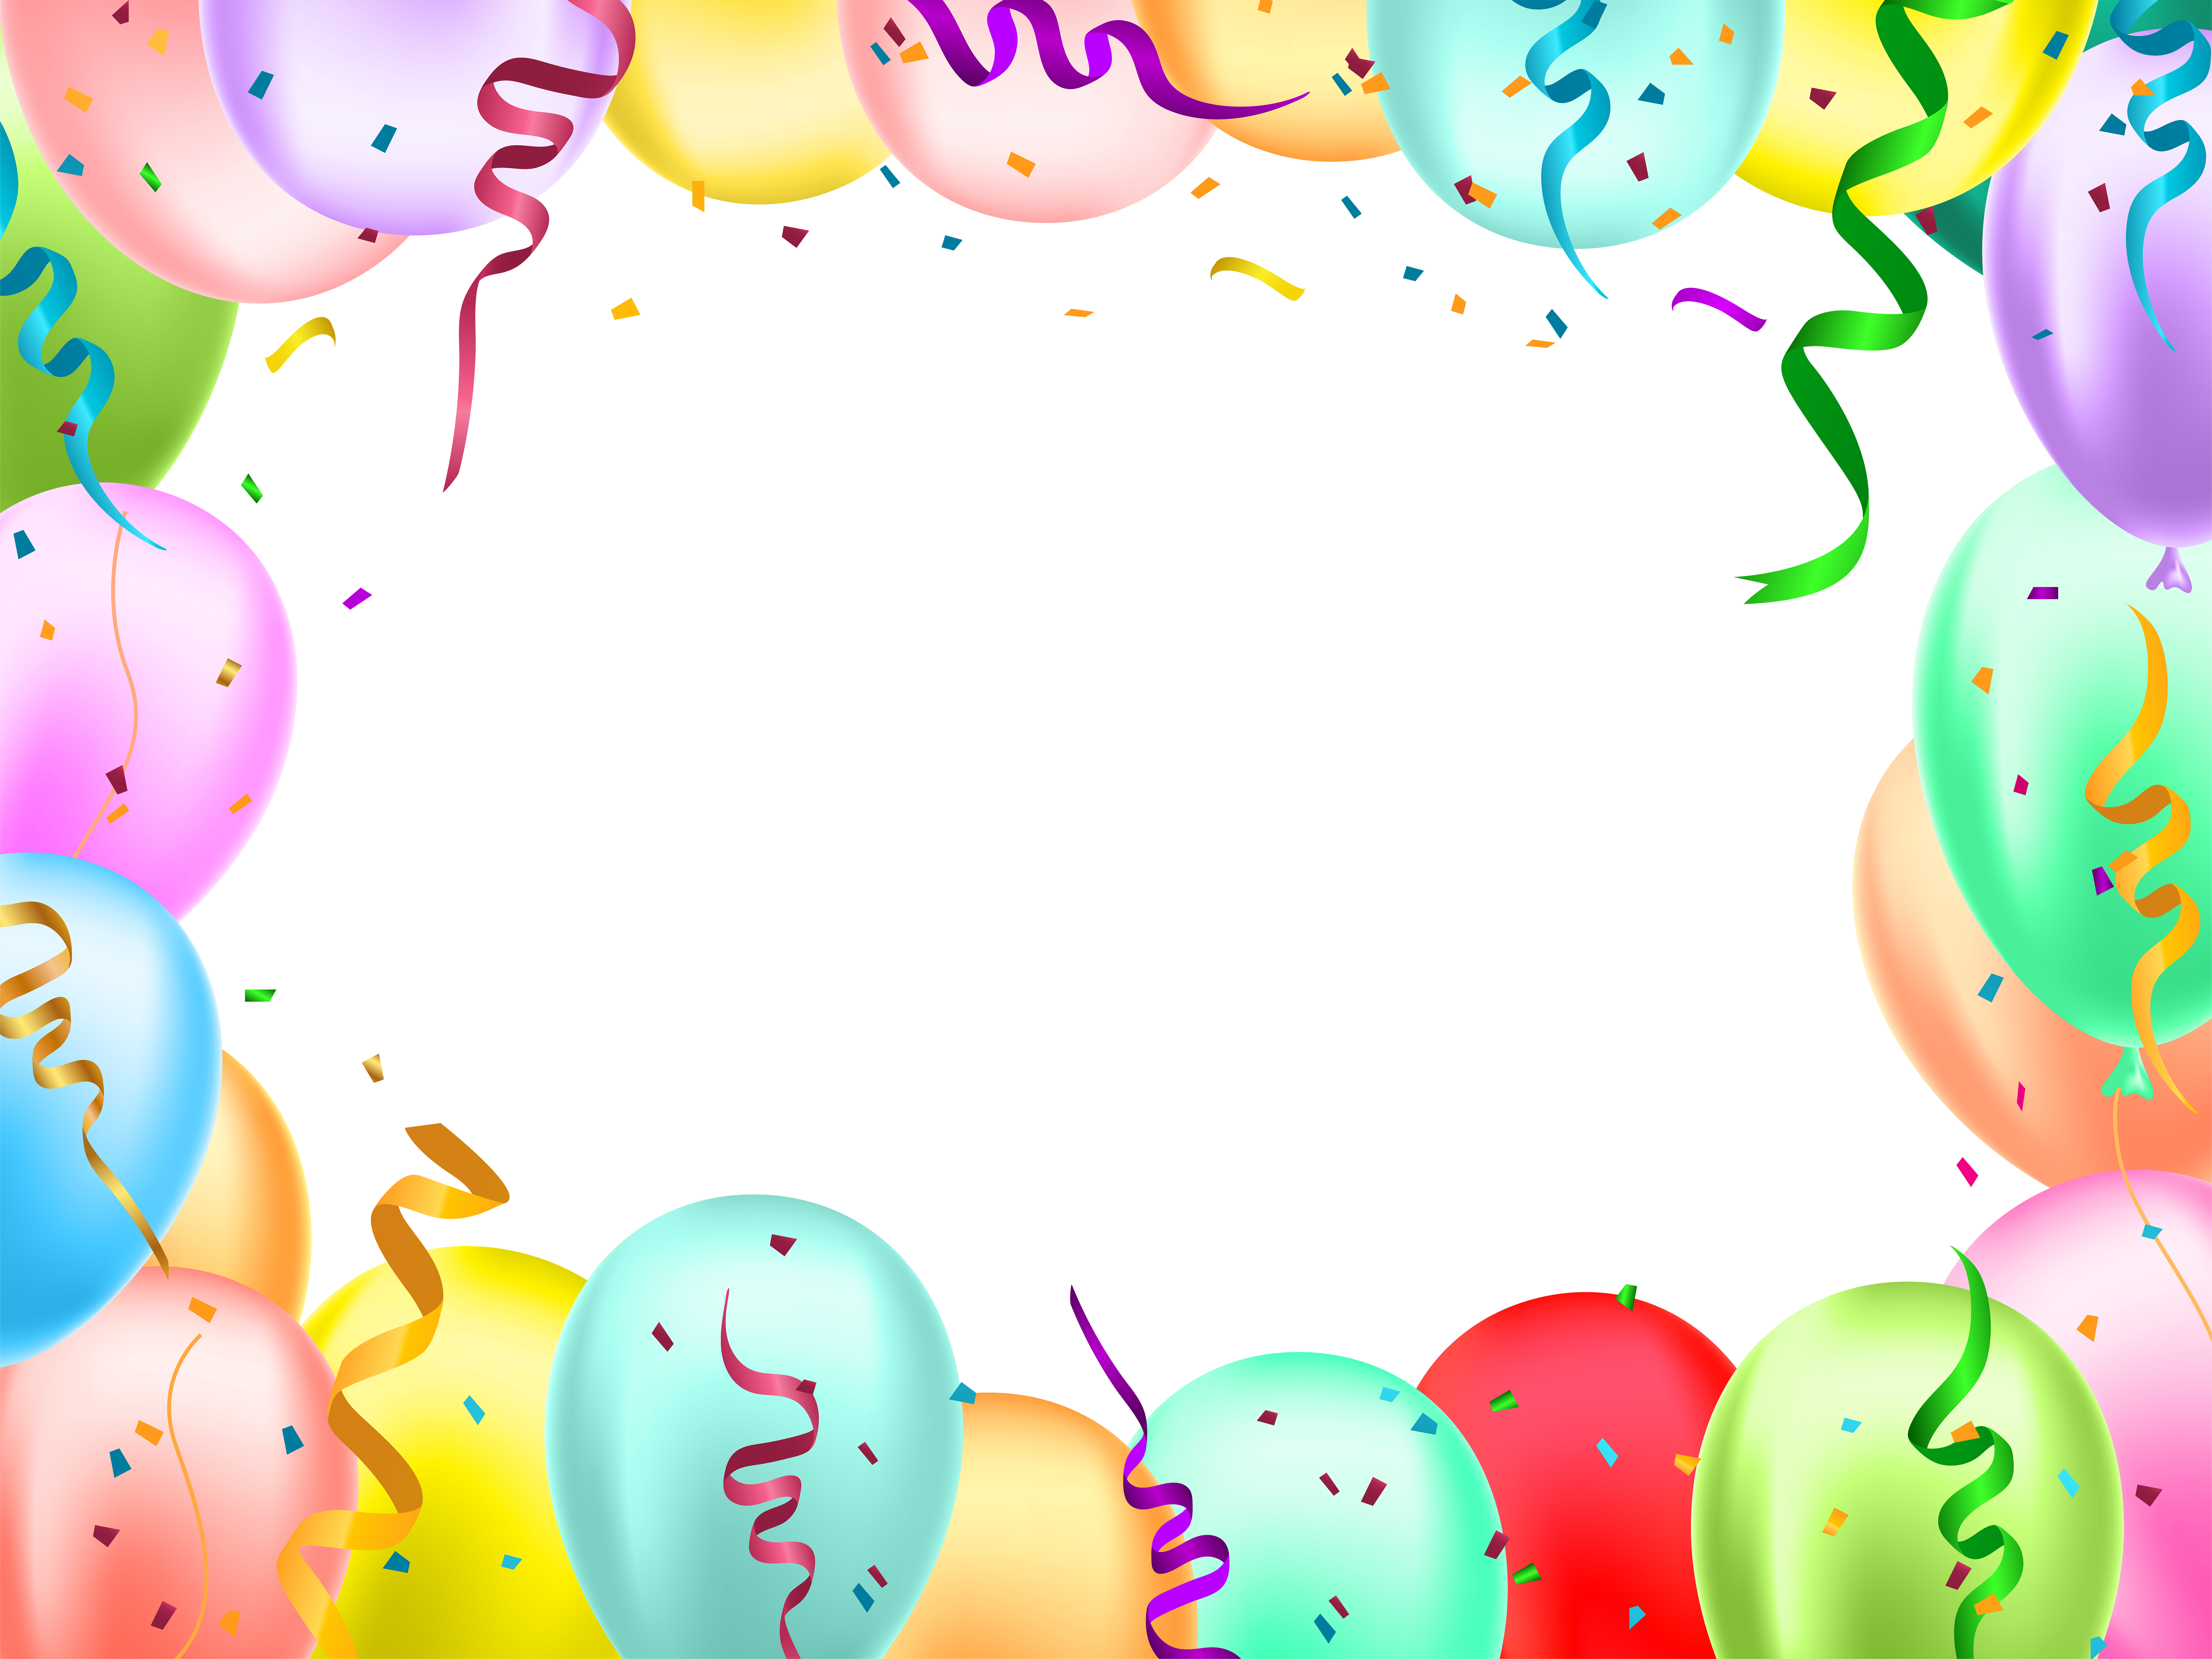 Birthday Border with Balloons Transparent Image.